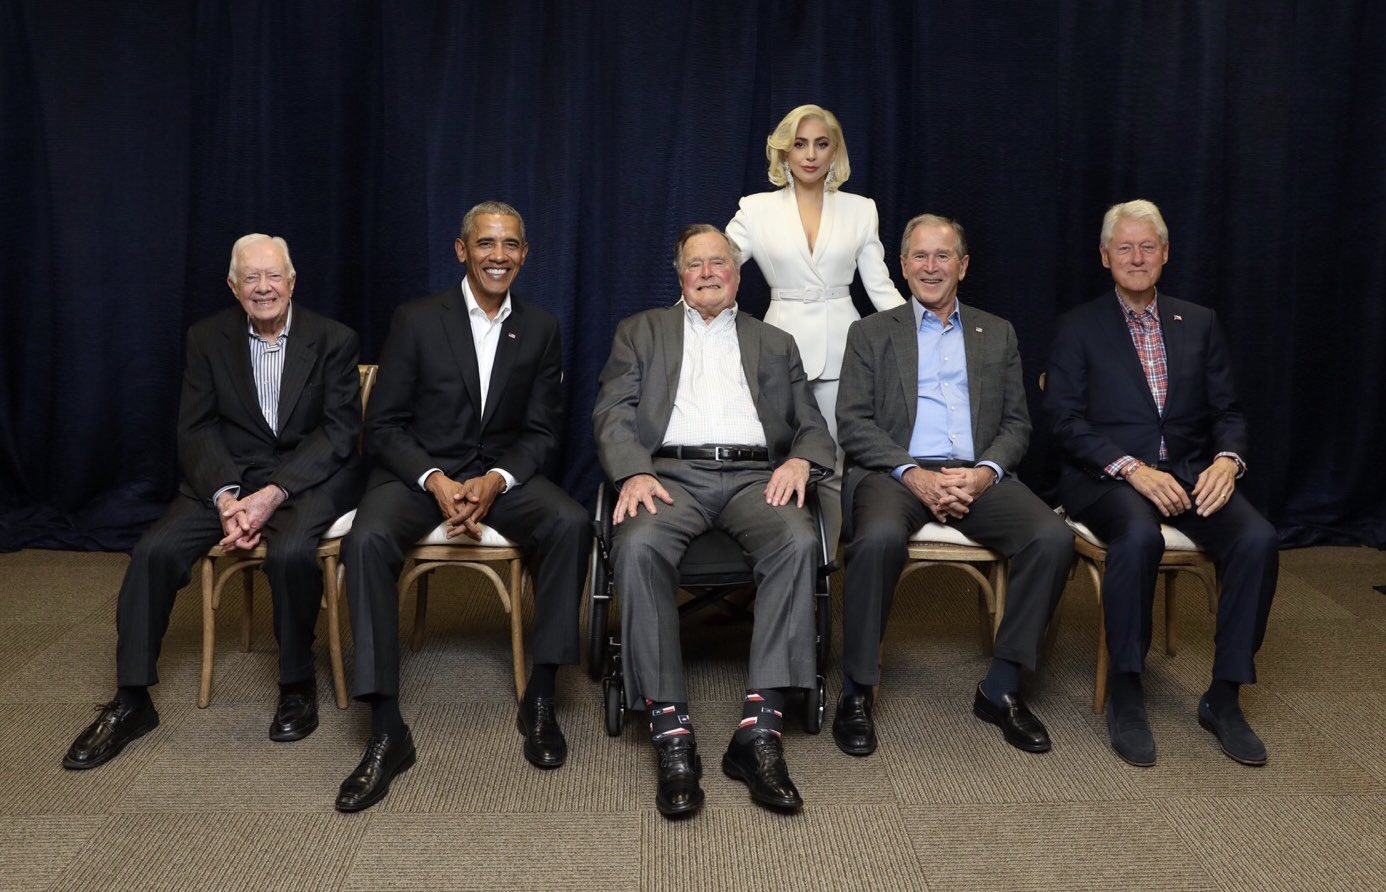 Photo of Lady Gaga and five living former presidents goes viral https://t.co/DLX7YFe5Jp https://t.co/ZIAS4NaXOw